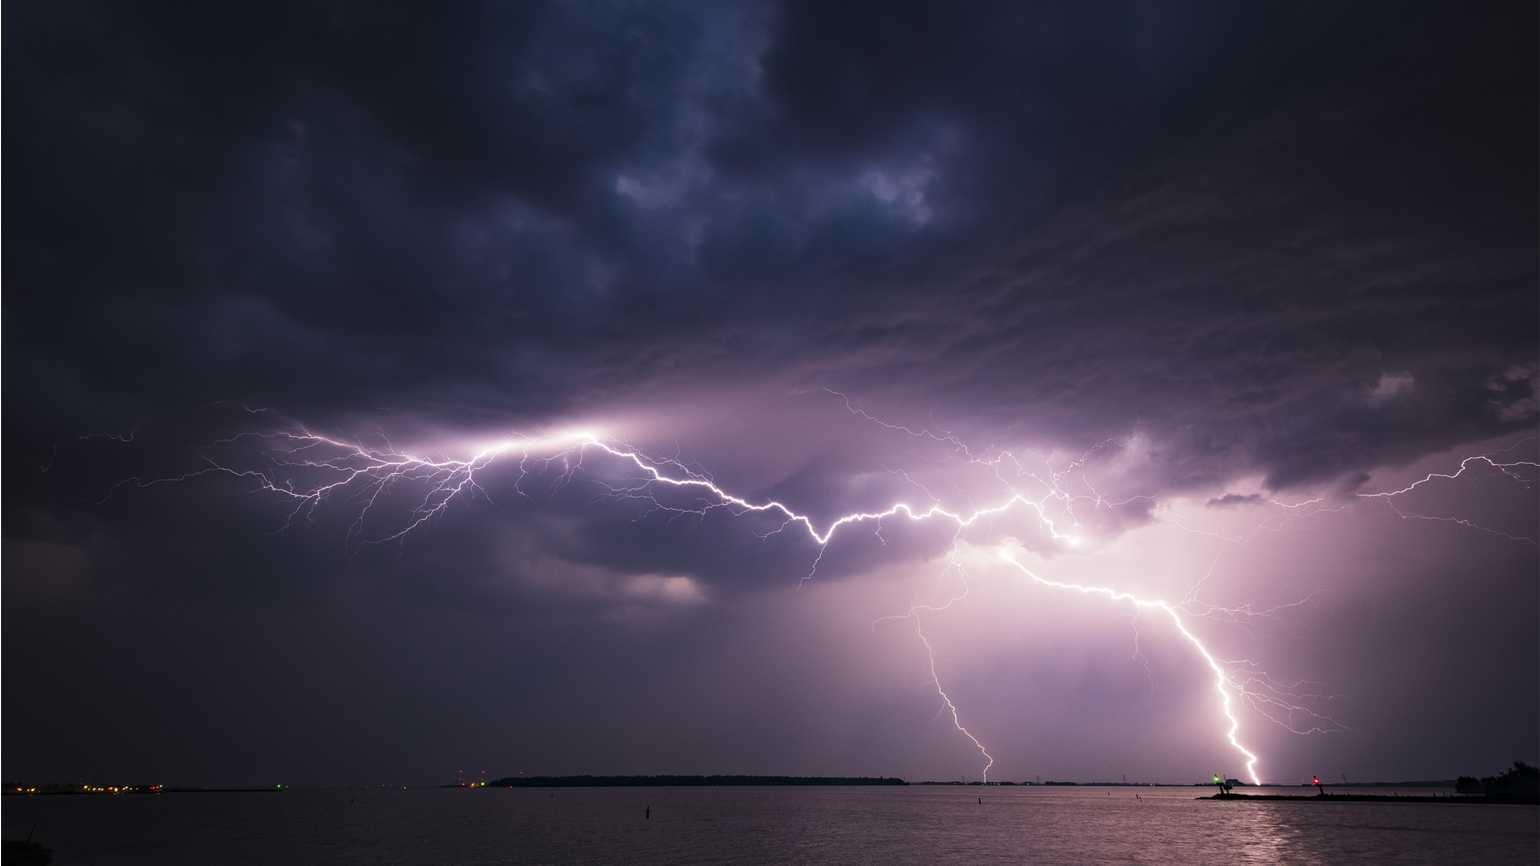 A bolt of lighning over a body of water; Getty Images